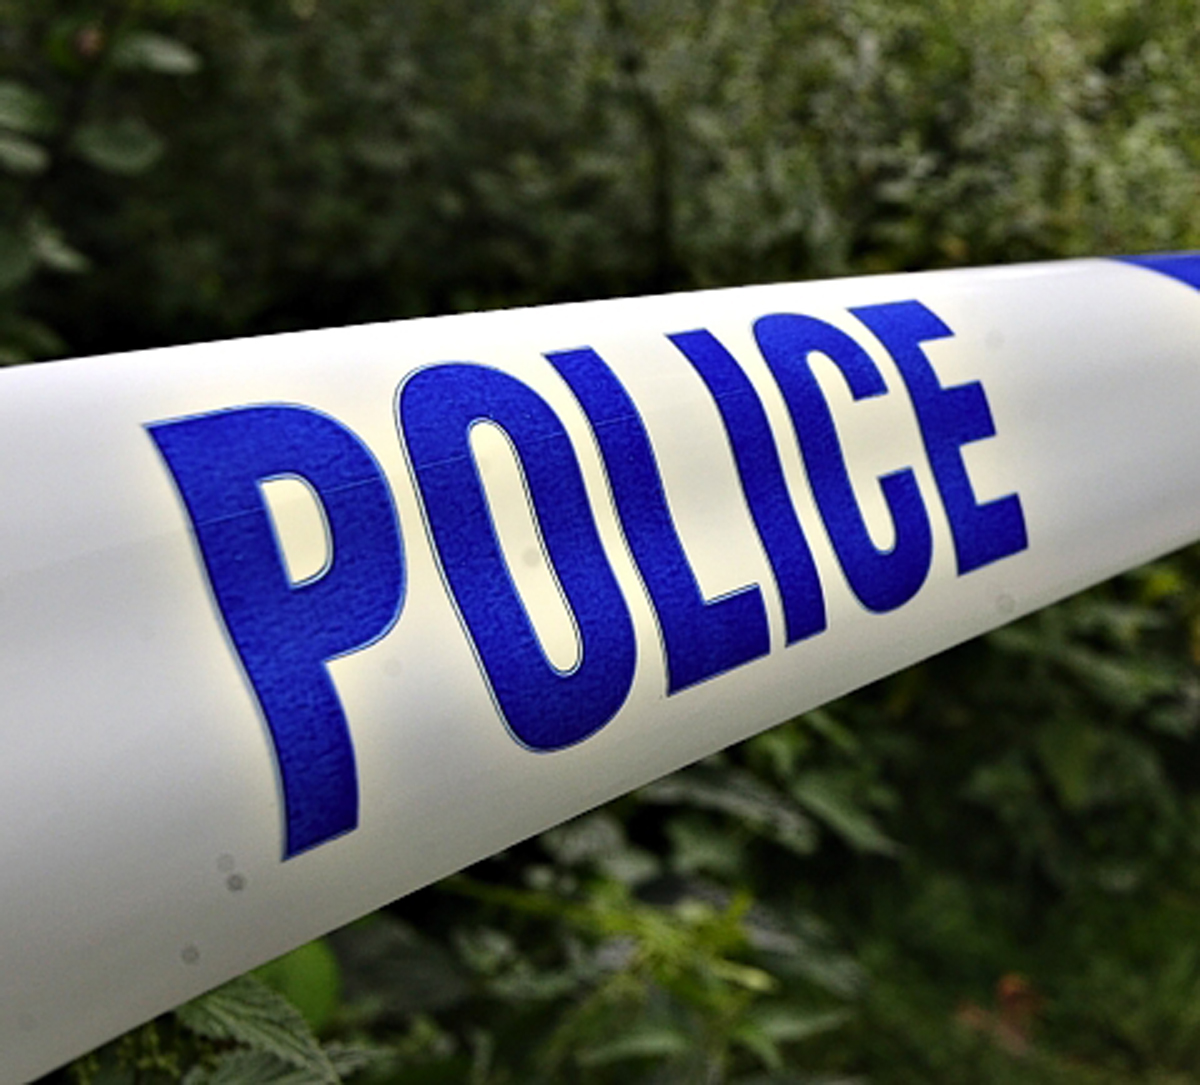 Teenage boys have been charged with robbing 11-year-old at knifepoint